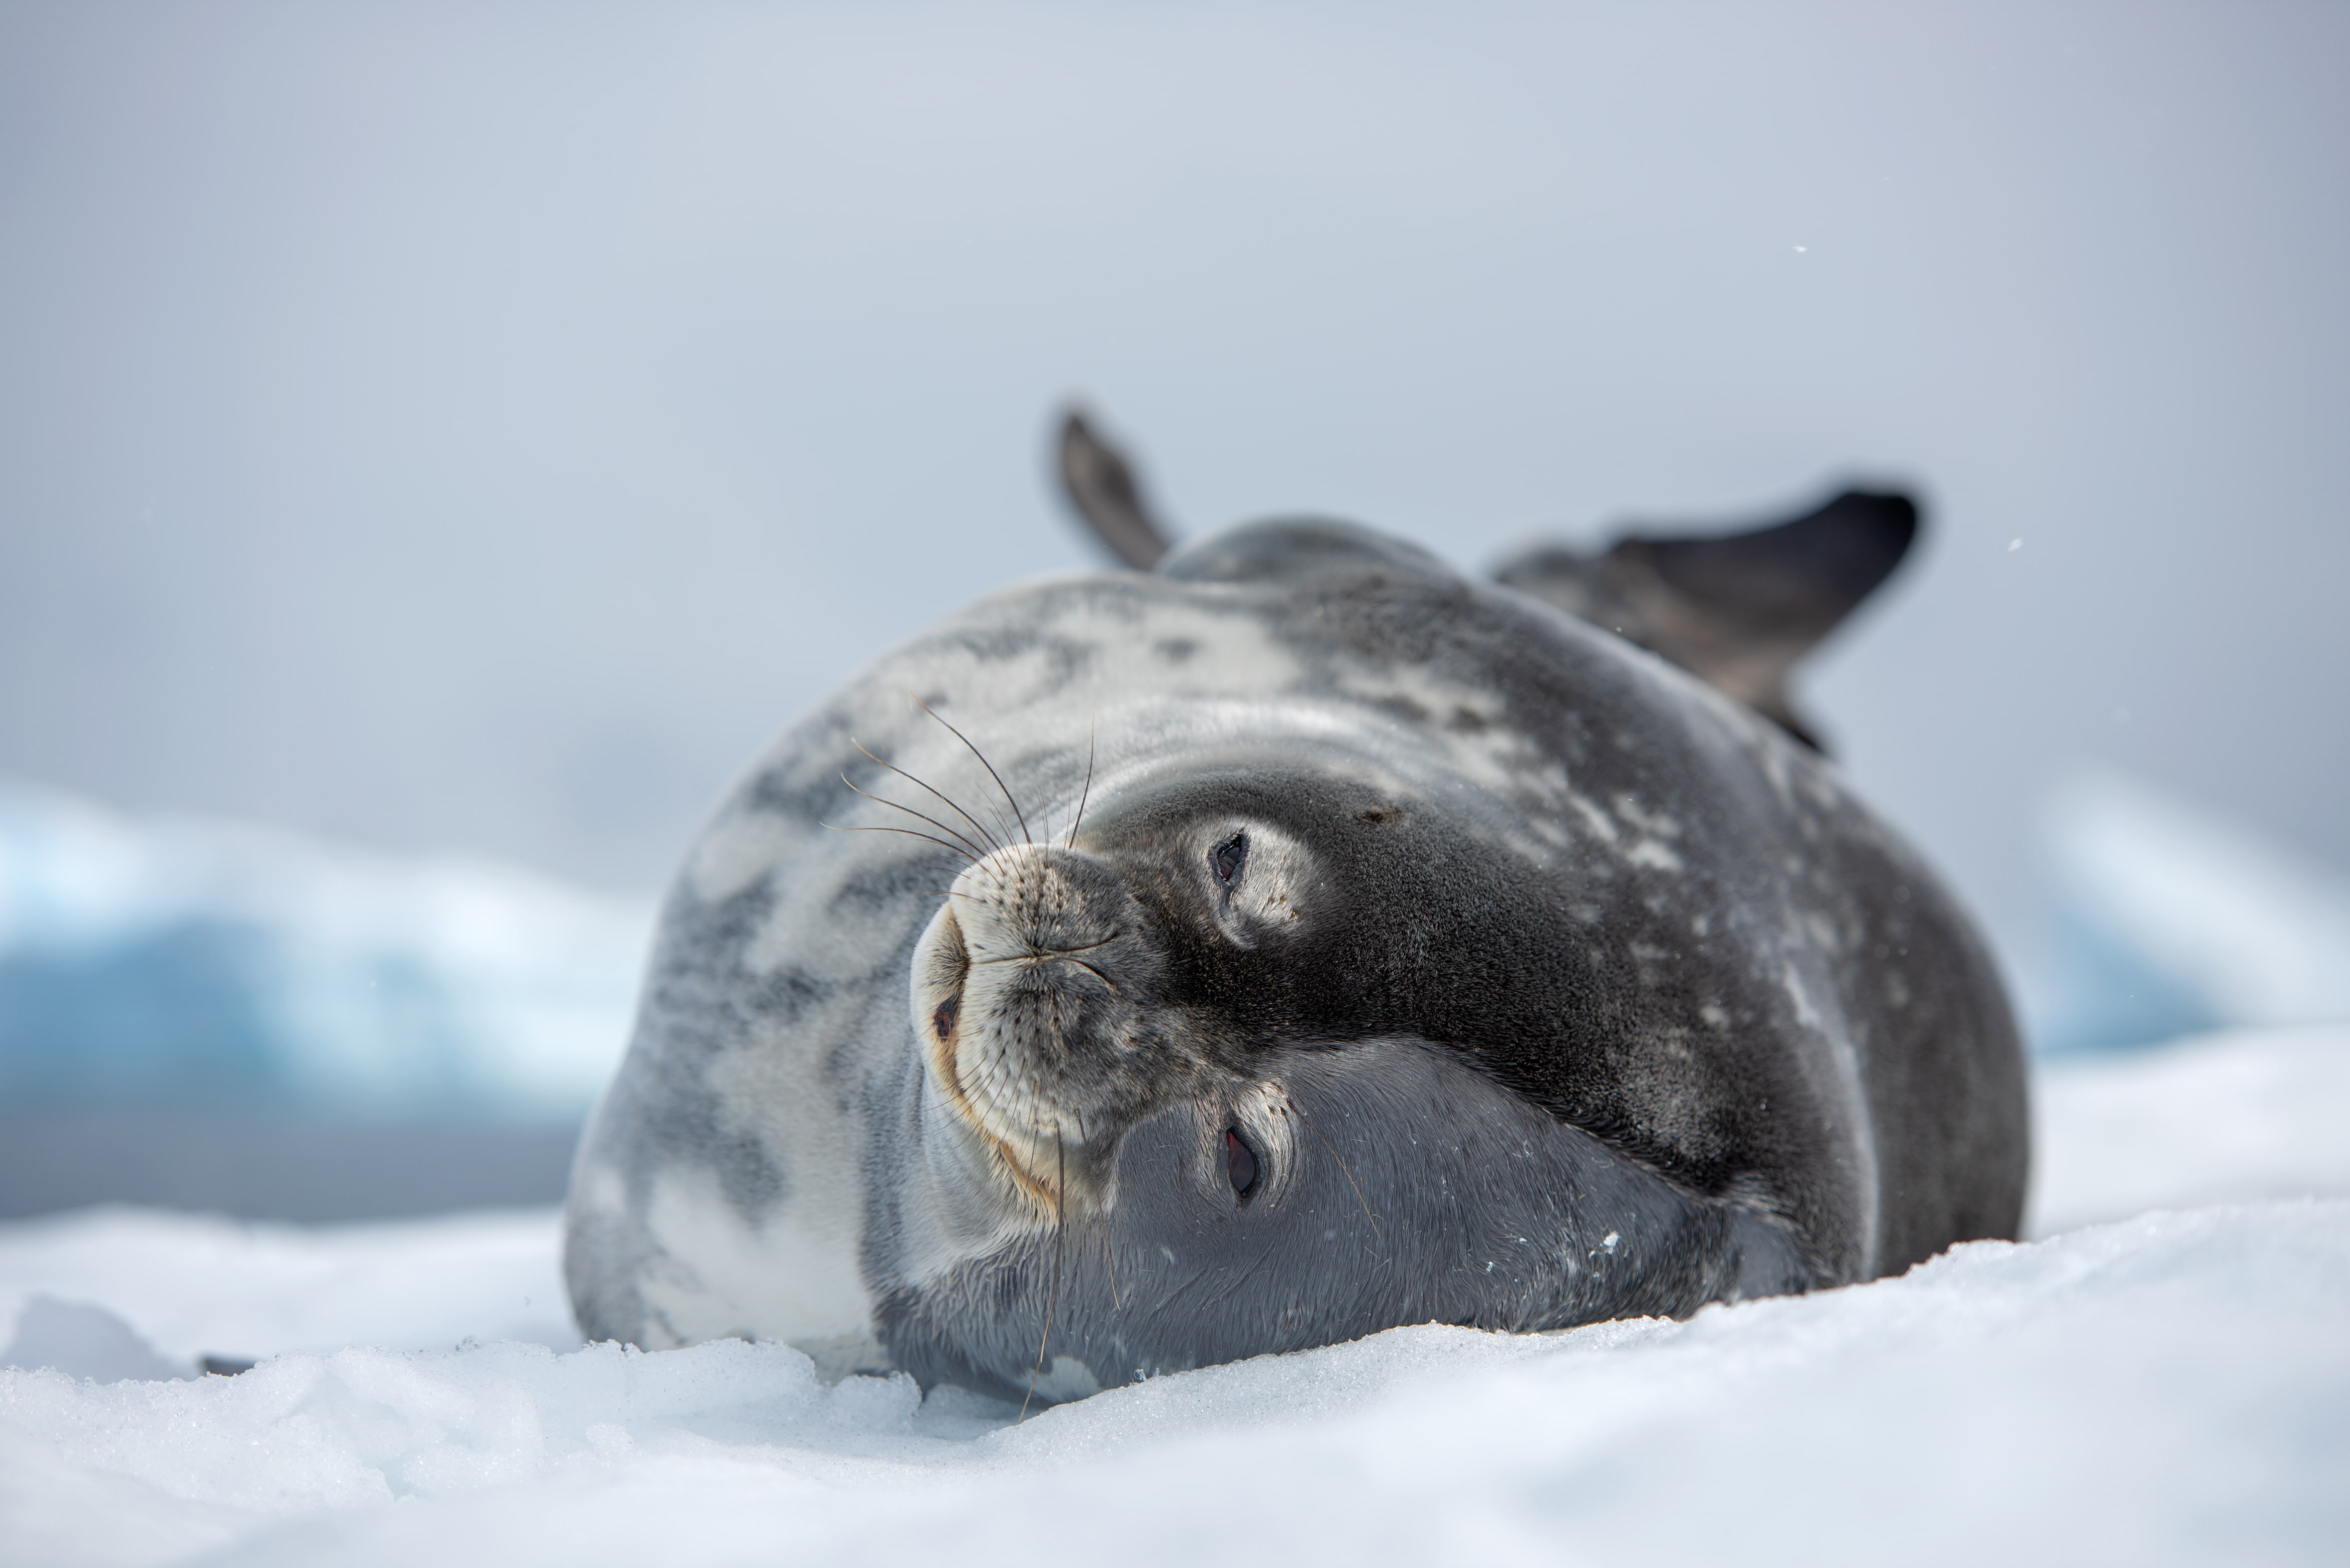 A sea lion lying on snow in the Antarctic Peninsula. Photo by Jordi Chias, National Geographic Pristine Seas.